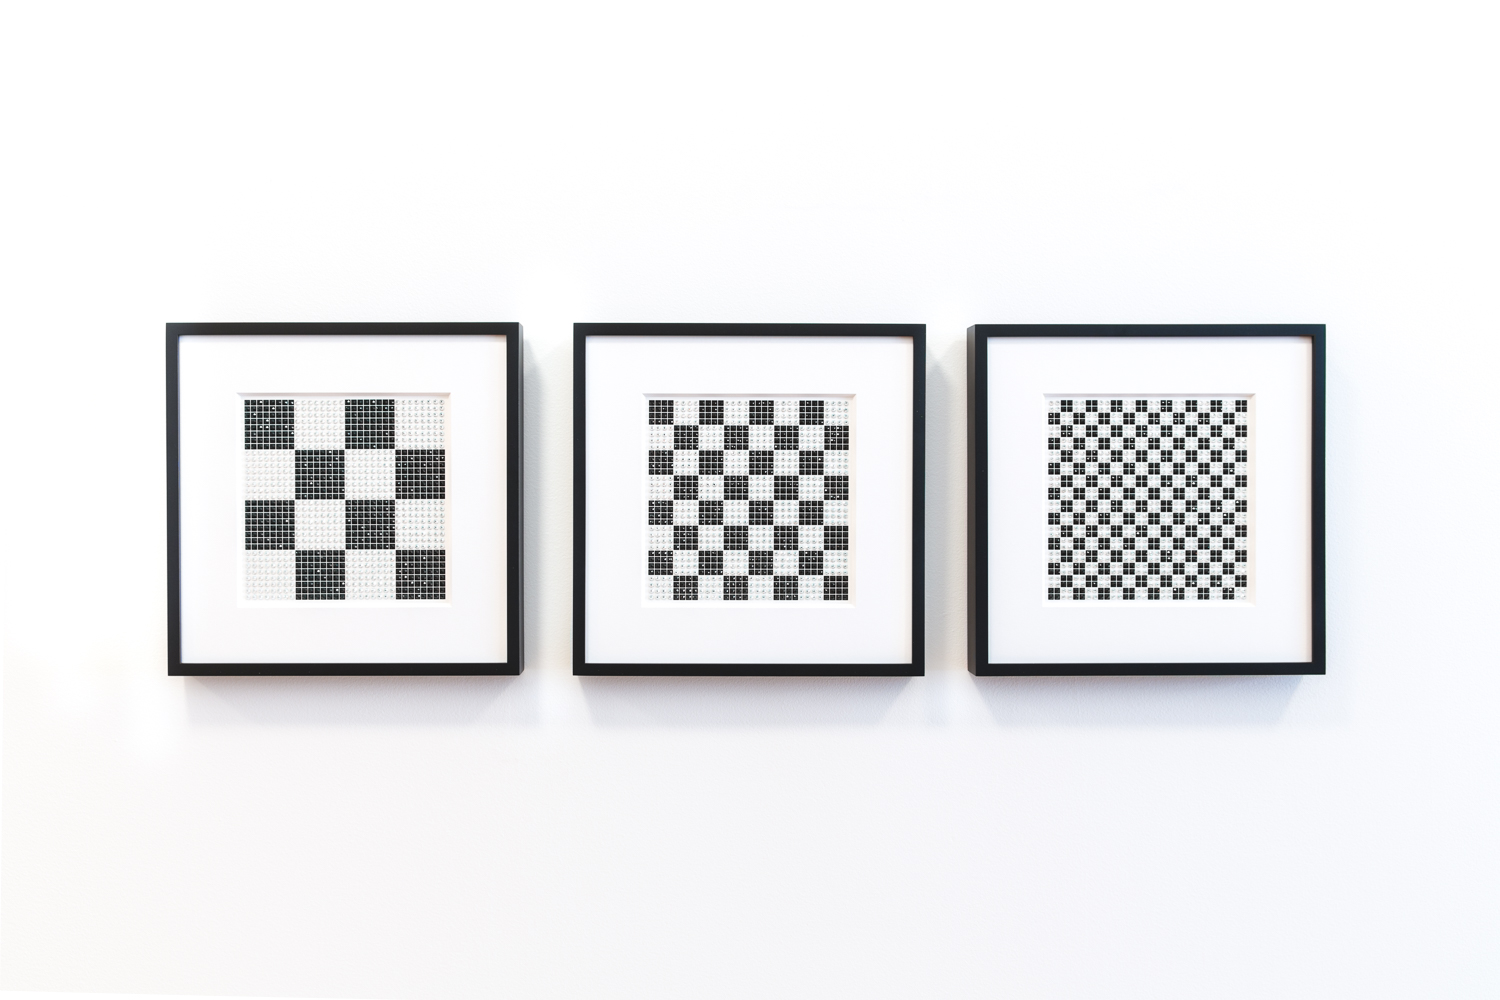 Fractal Checker Installation in black and white